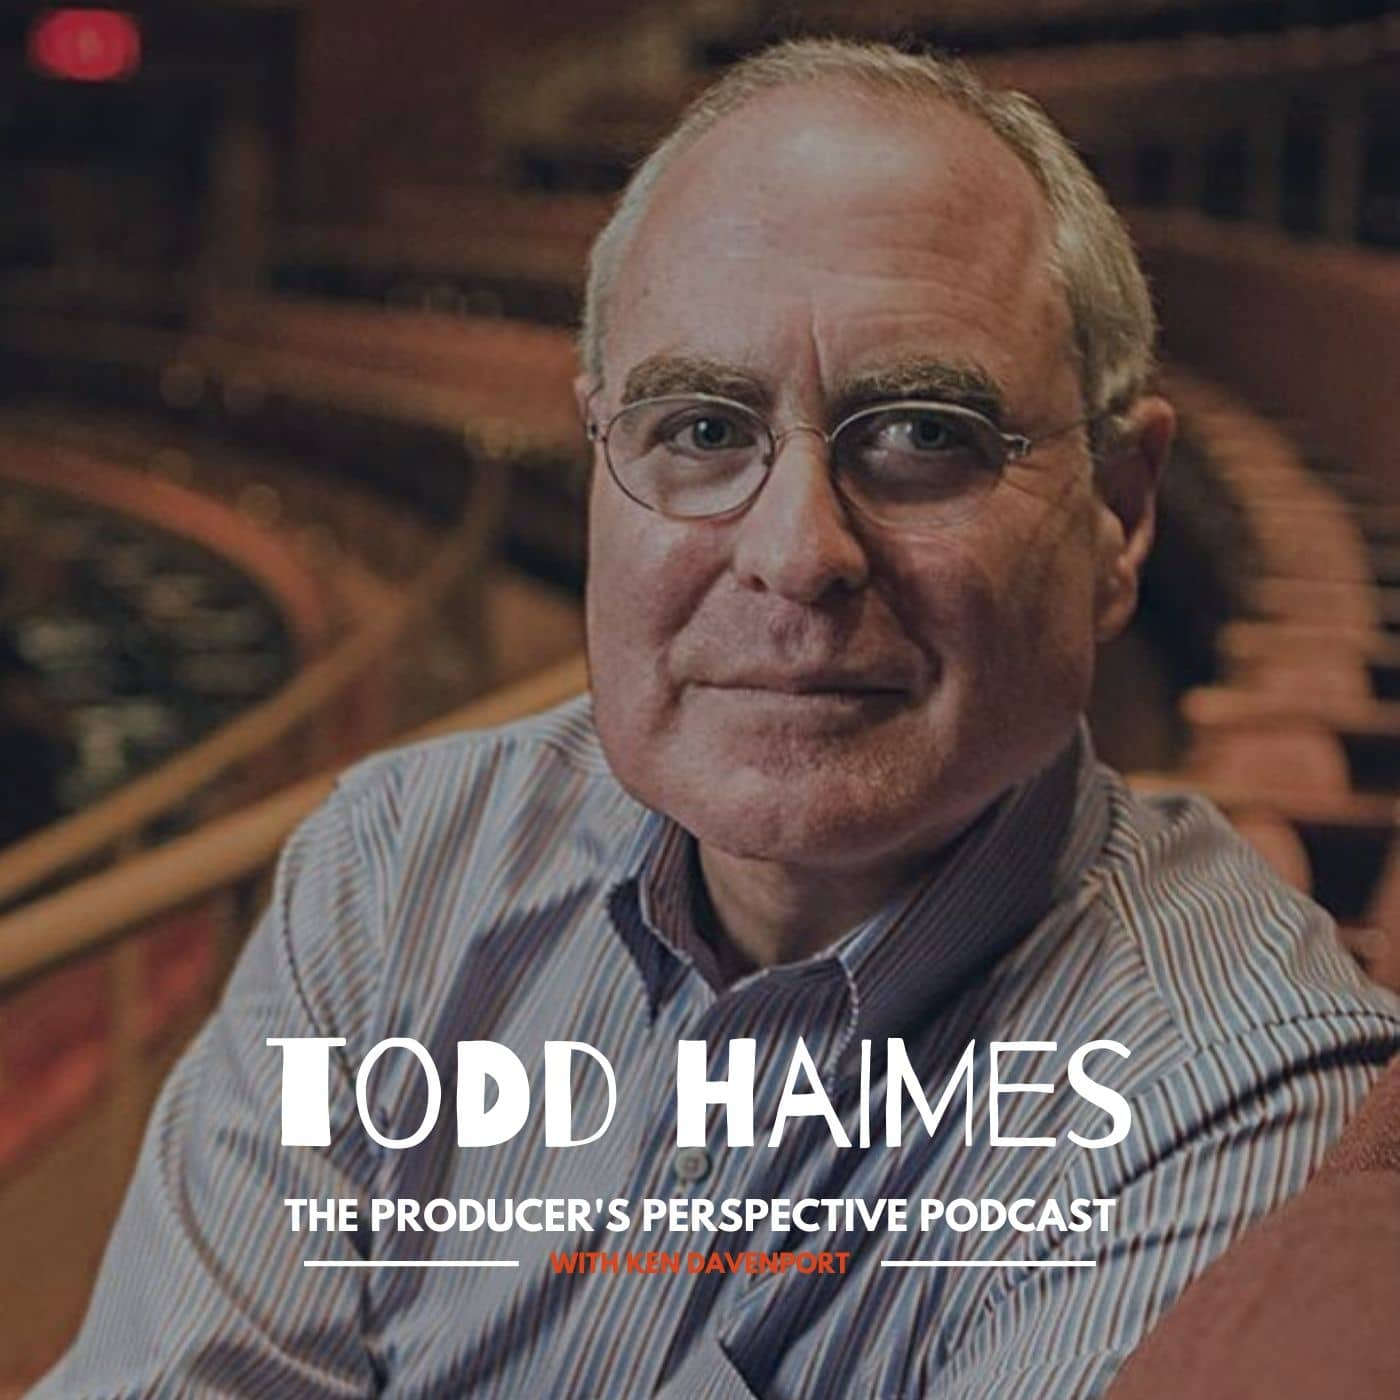 Ken Davenport's The Producer's Perspective Podcast Episode 7 - Todd Haimes